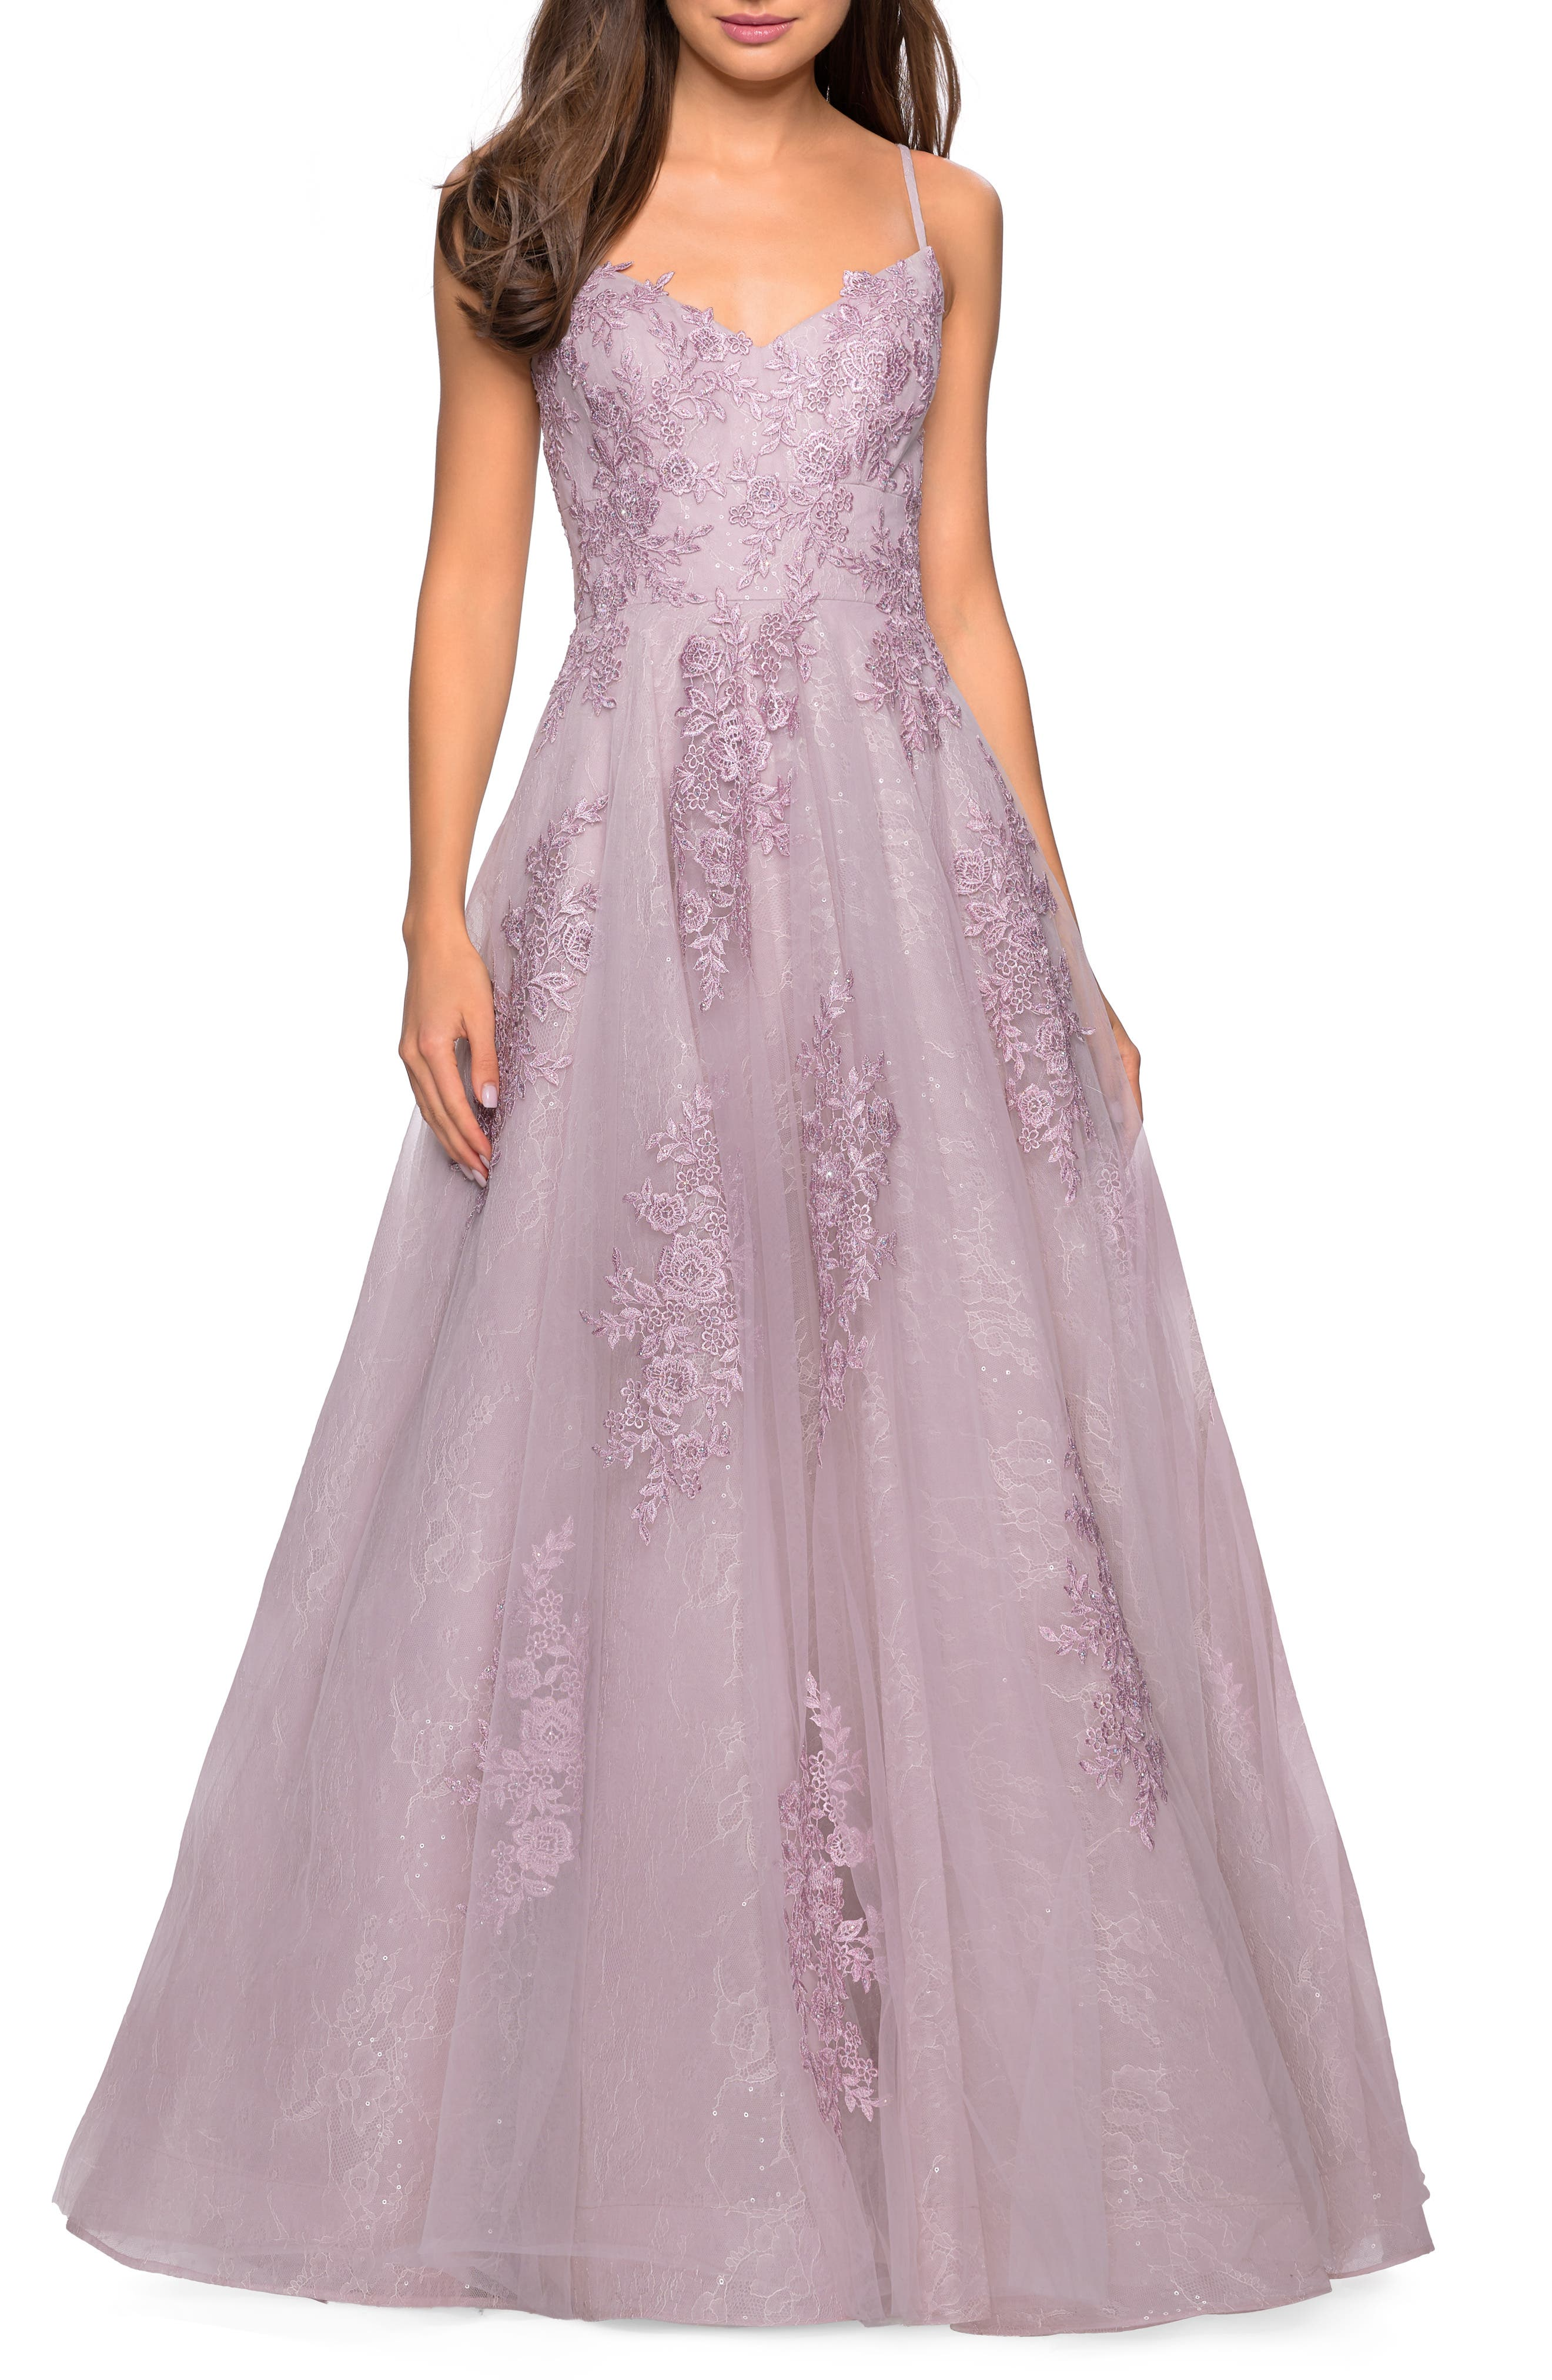 La Femme Lace A-Line Evening Dress, Pink